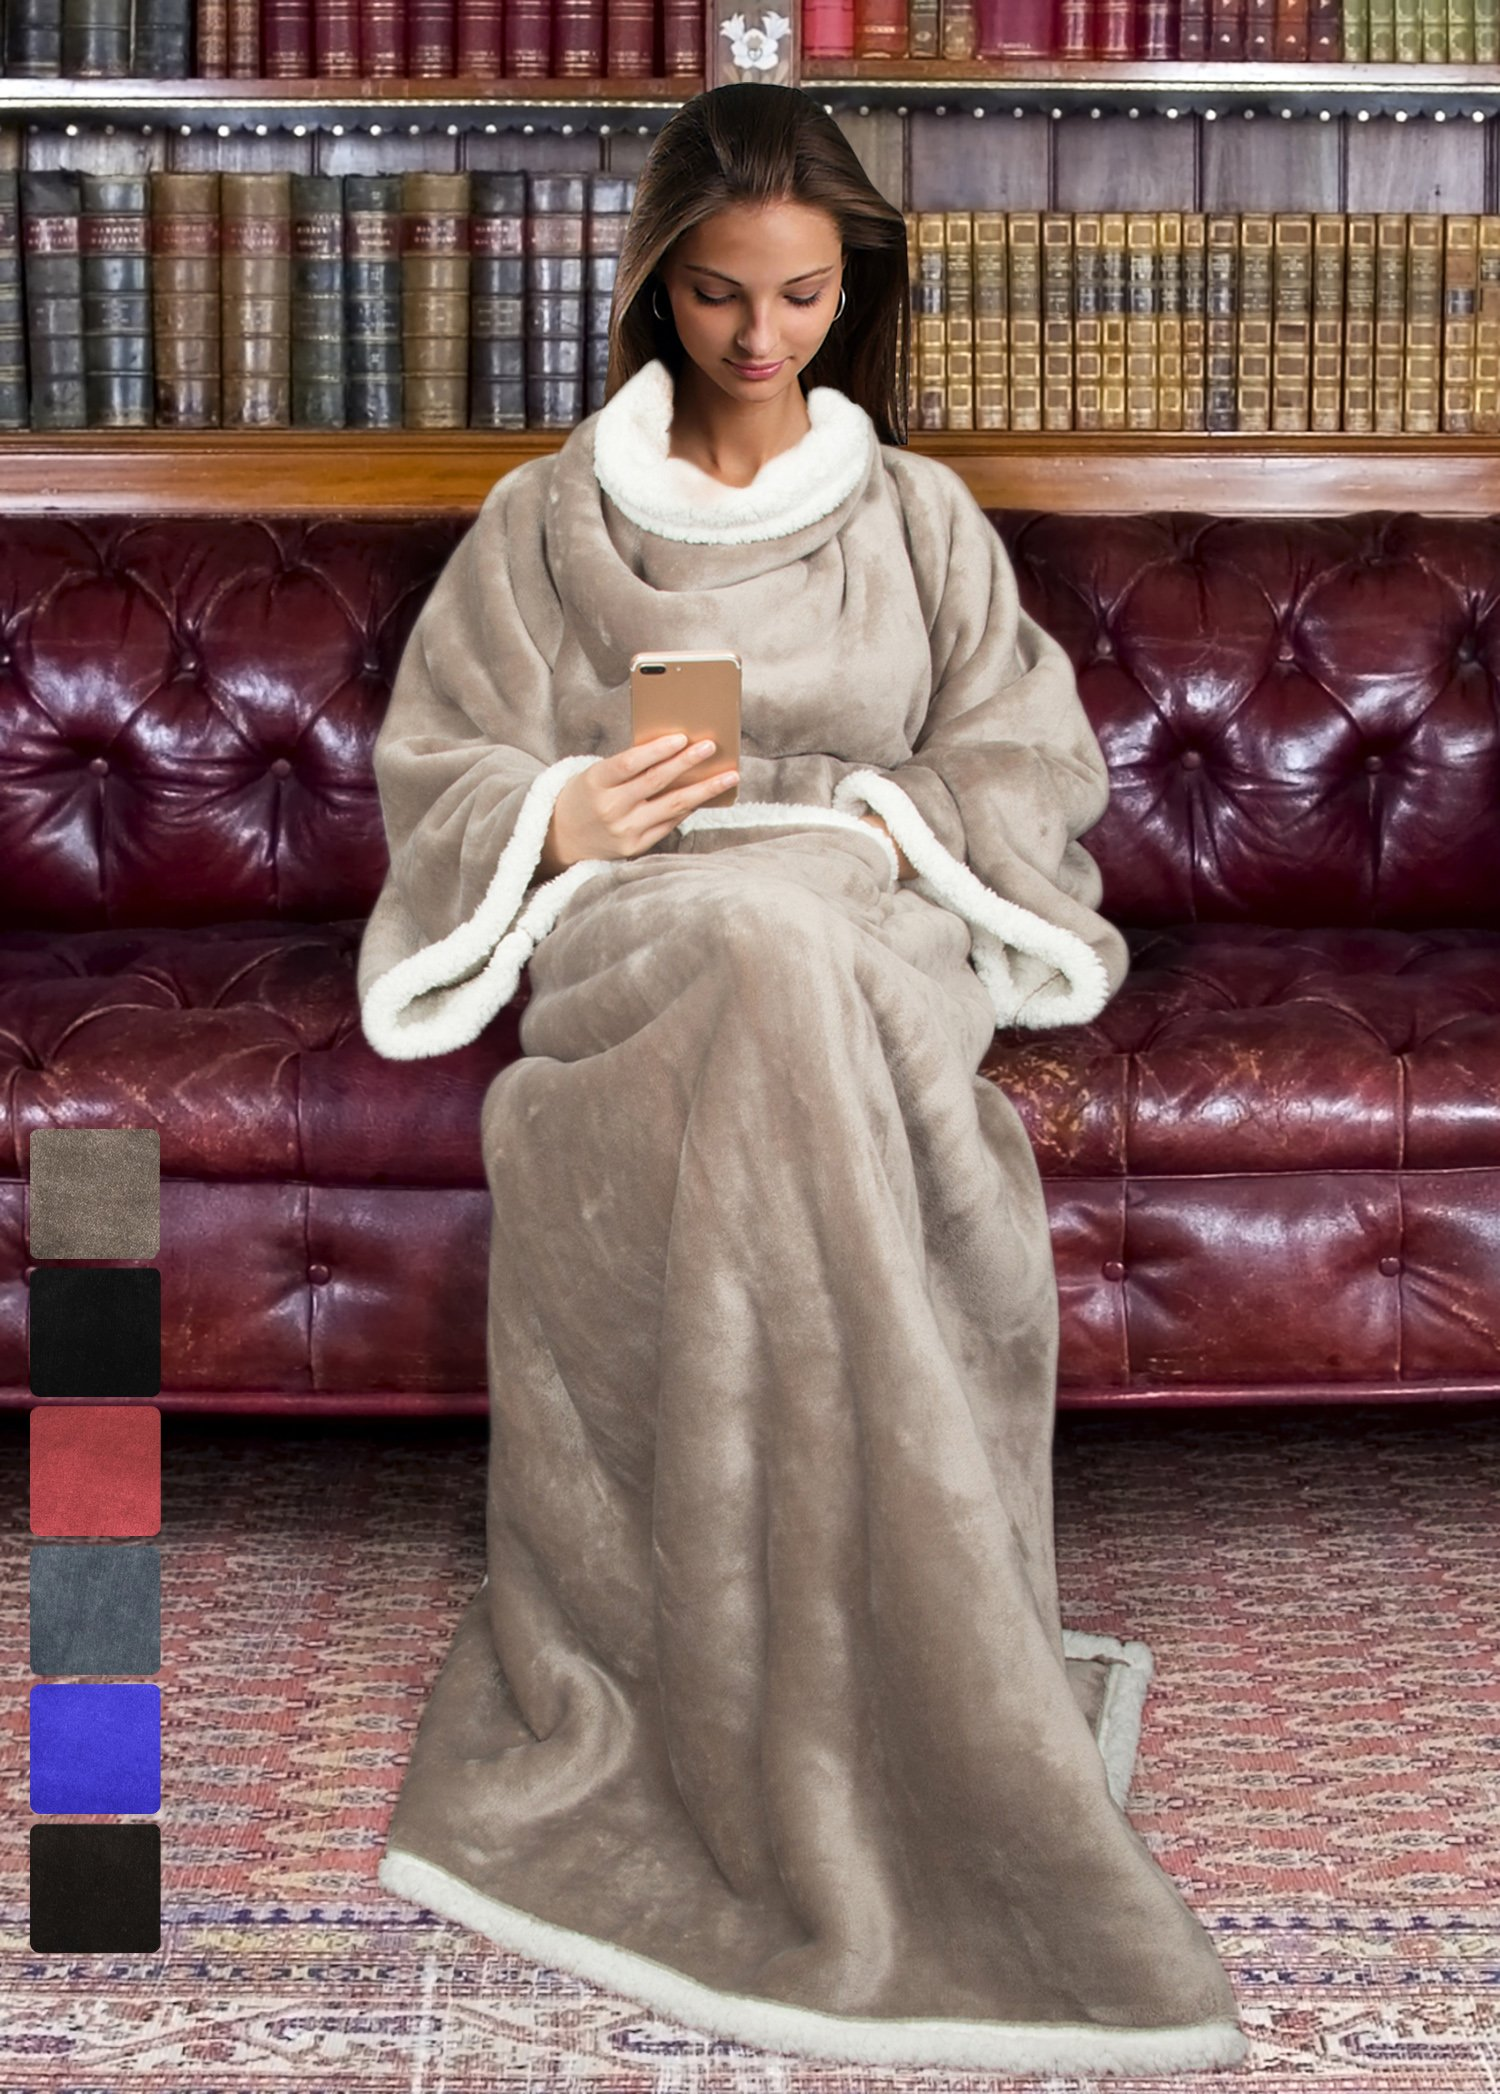 Terrania Sherpa Blanket with Sleeves for Women and Men, Super Soft Mink Fleece Wearable Adult Comfy Throw Robe TV Blanket 72'' x 55'' | Catalonia series by Camel